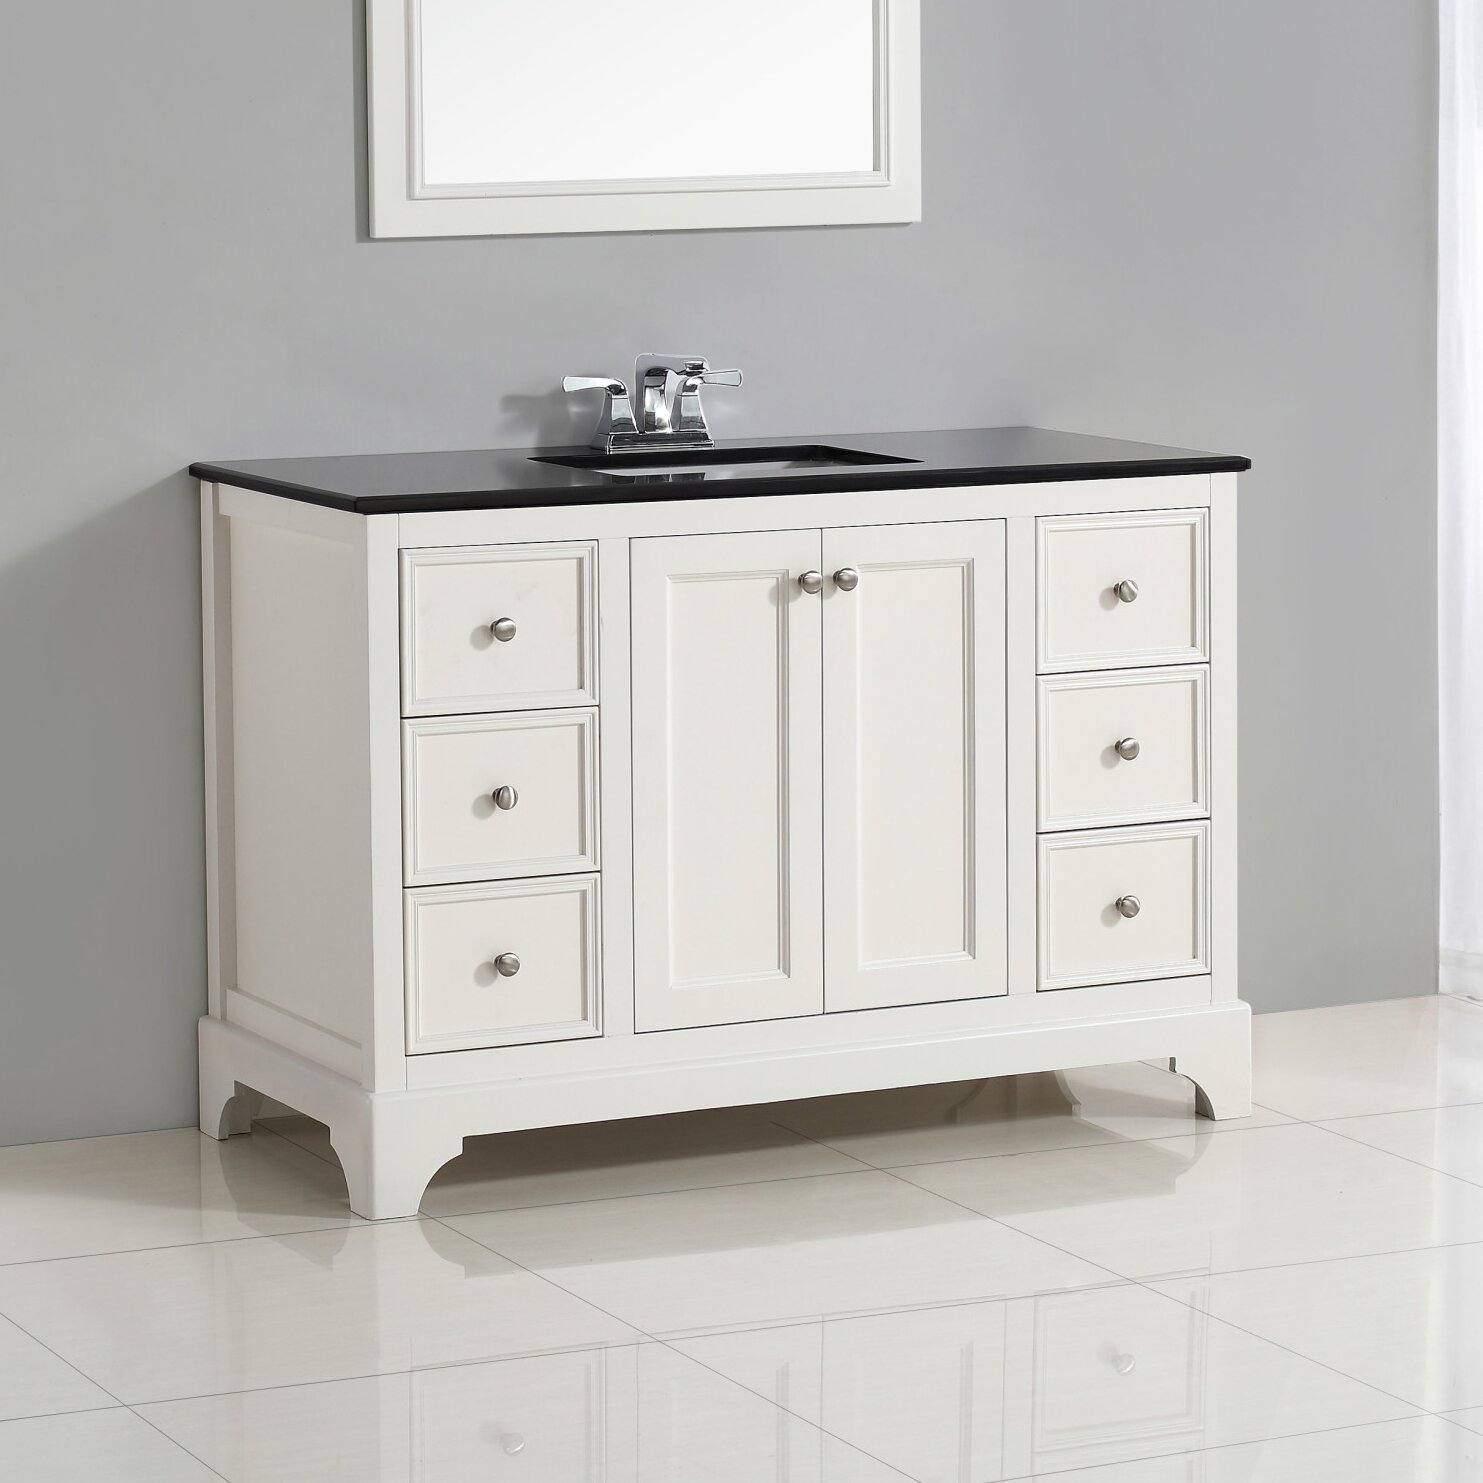 Simpli home cambridge 49 single bath vanity set reviews for Bath and vanity set